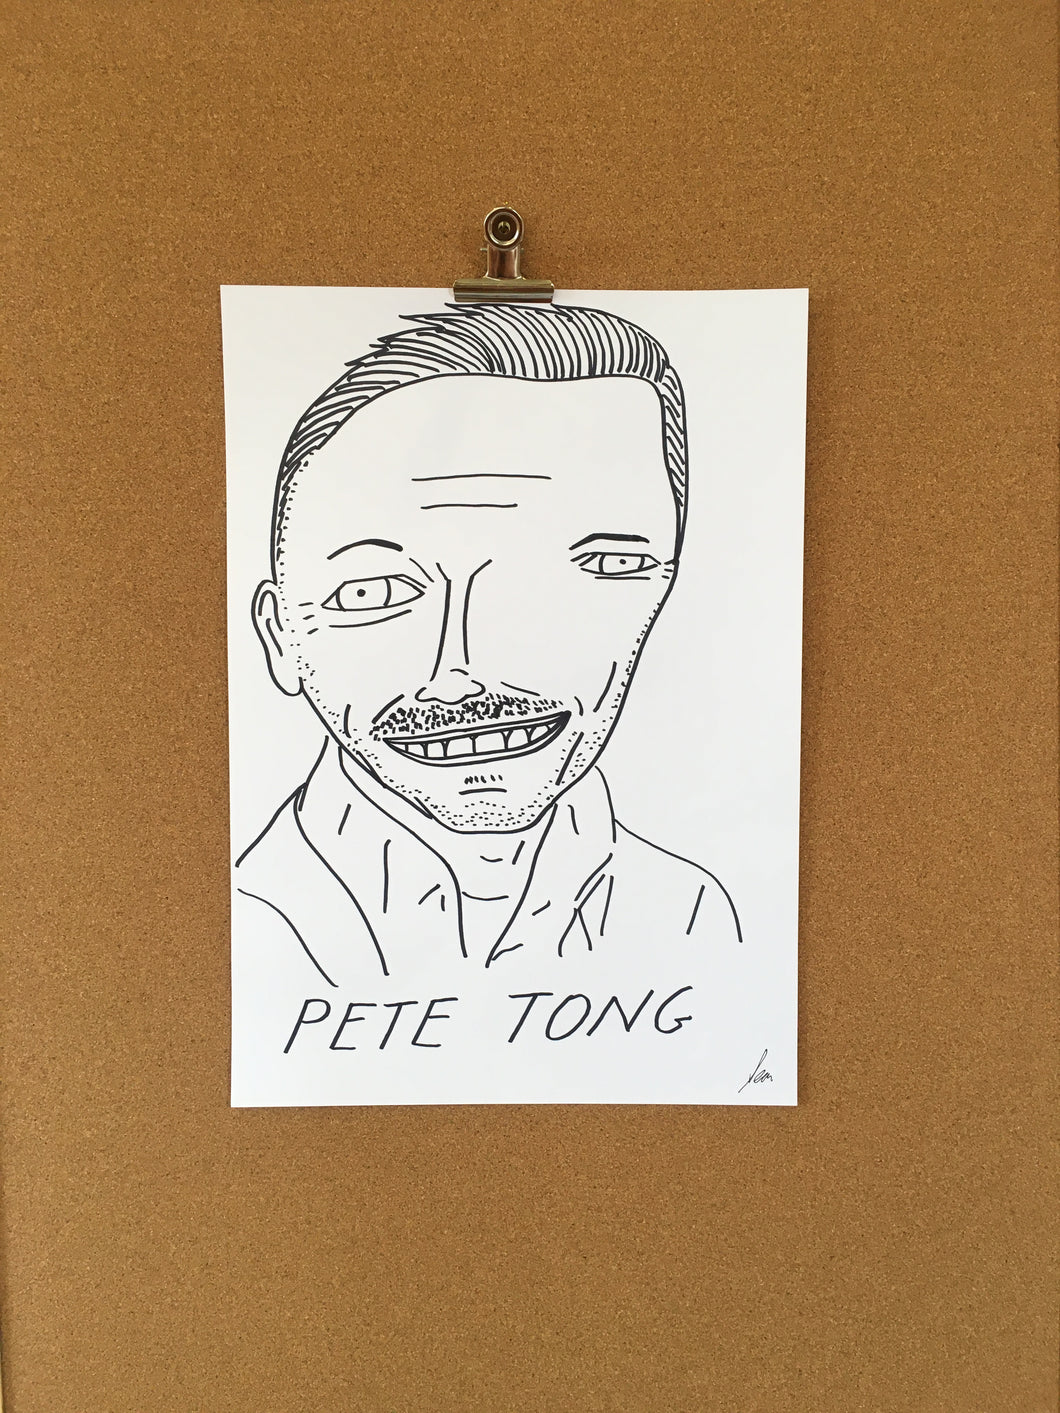 Badly Drawn Pete Tong - Original Drawing - A3.